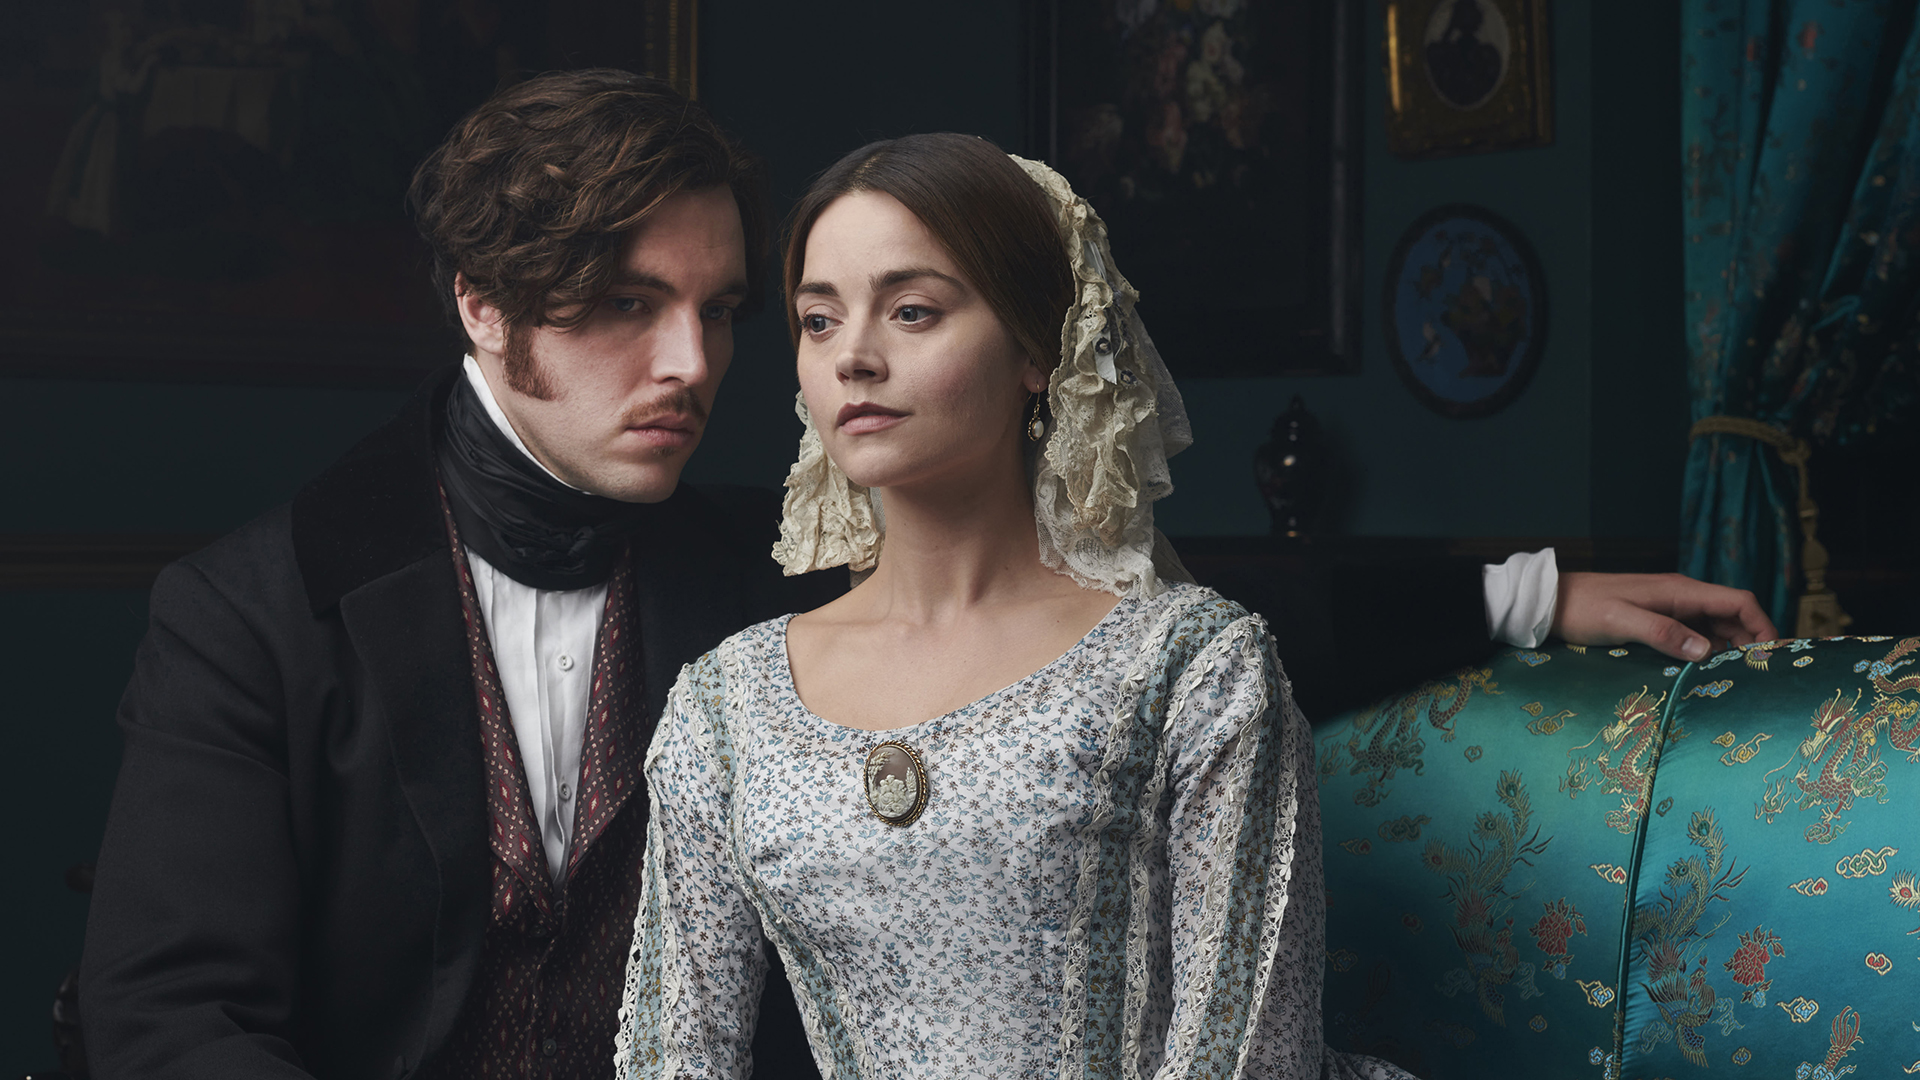 'Victoria' returns with a revolution in the air